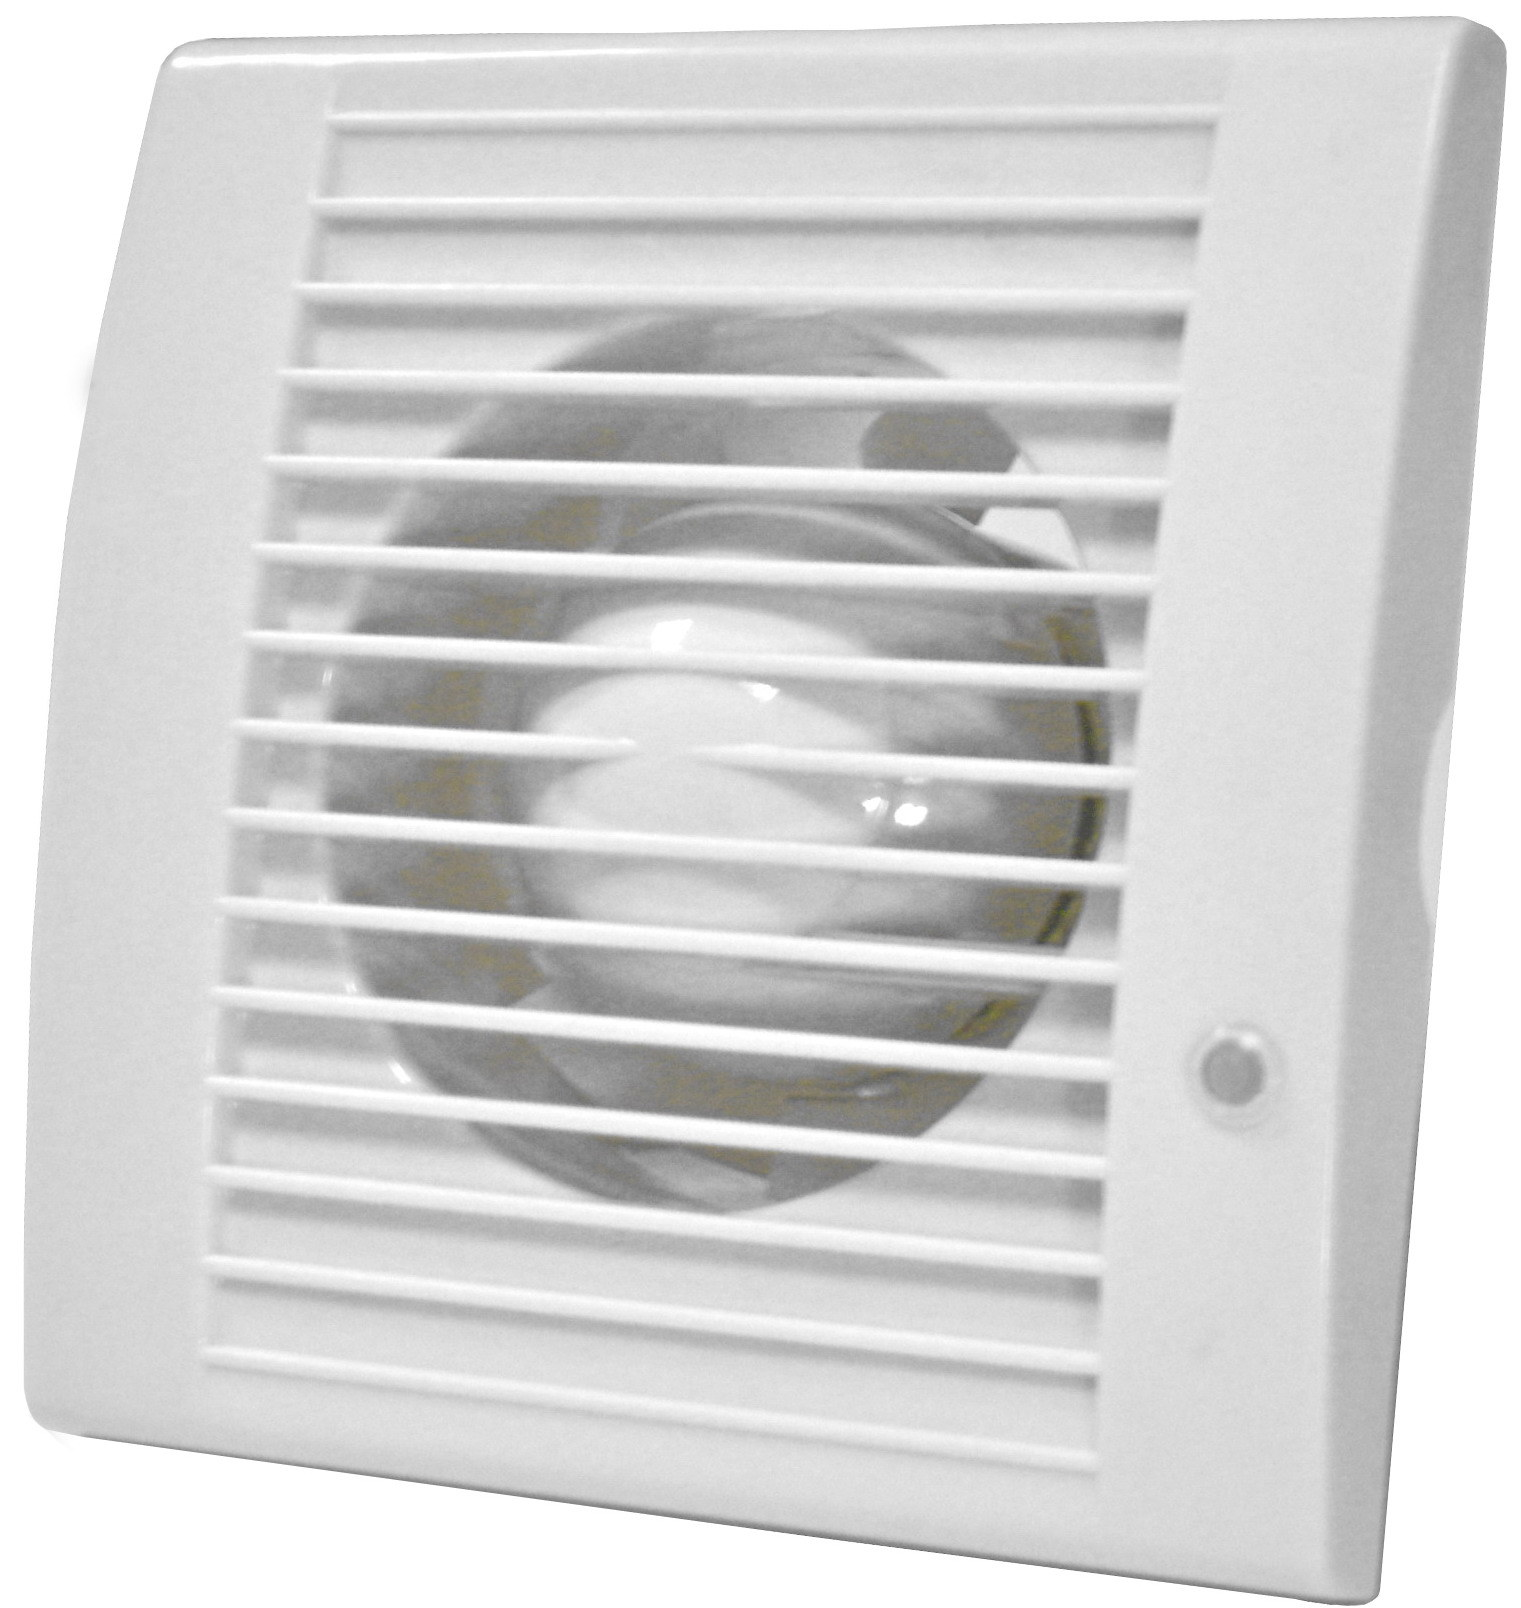 fans rooms exhaust and bathroom bathrooms vent skylight hunter kit skylighttubular laundry for